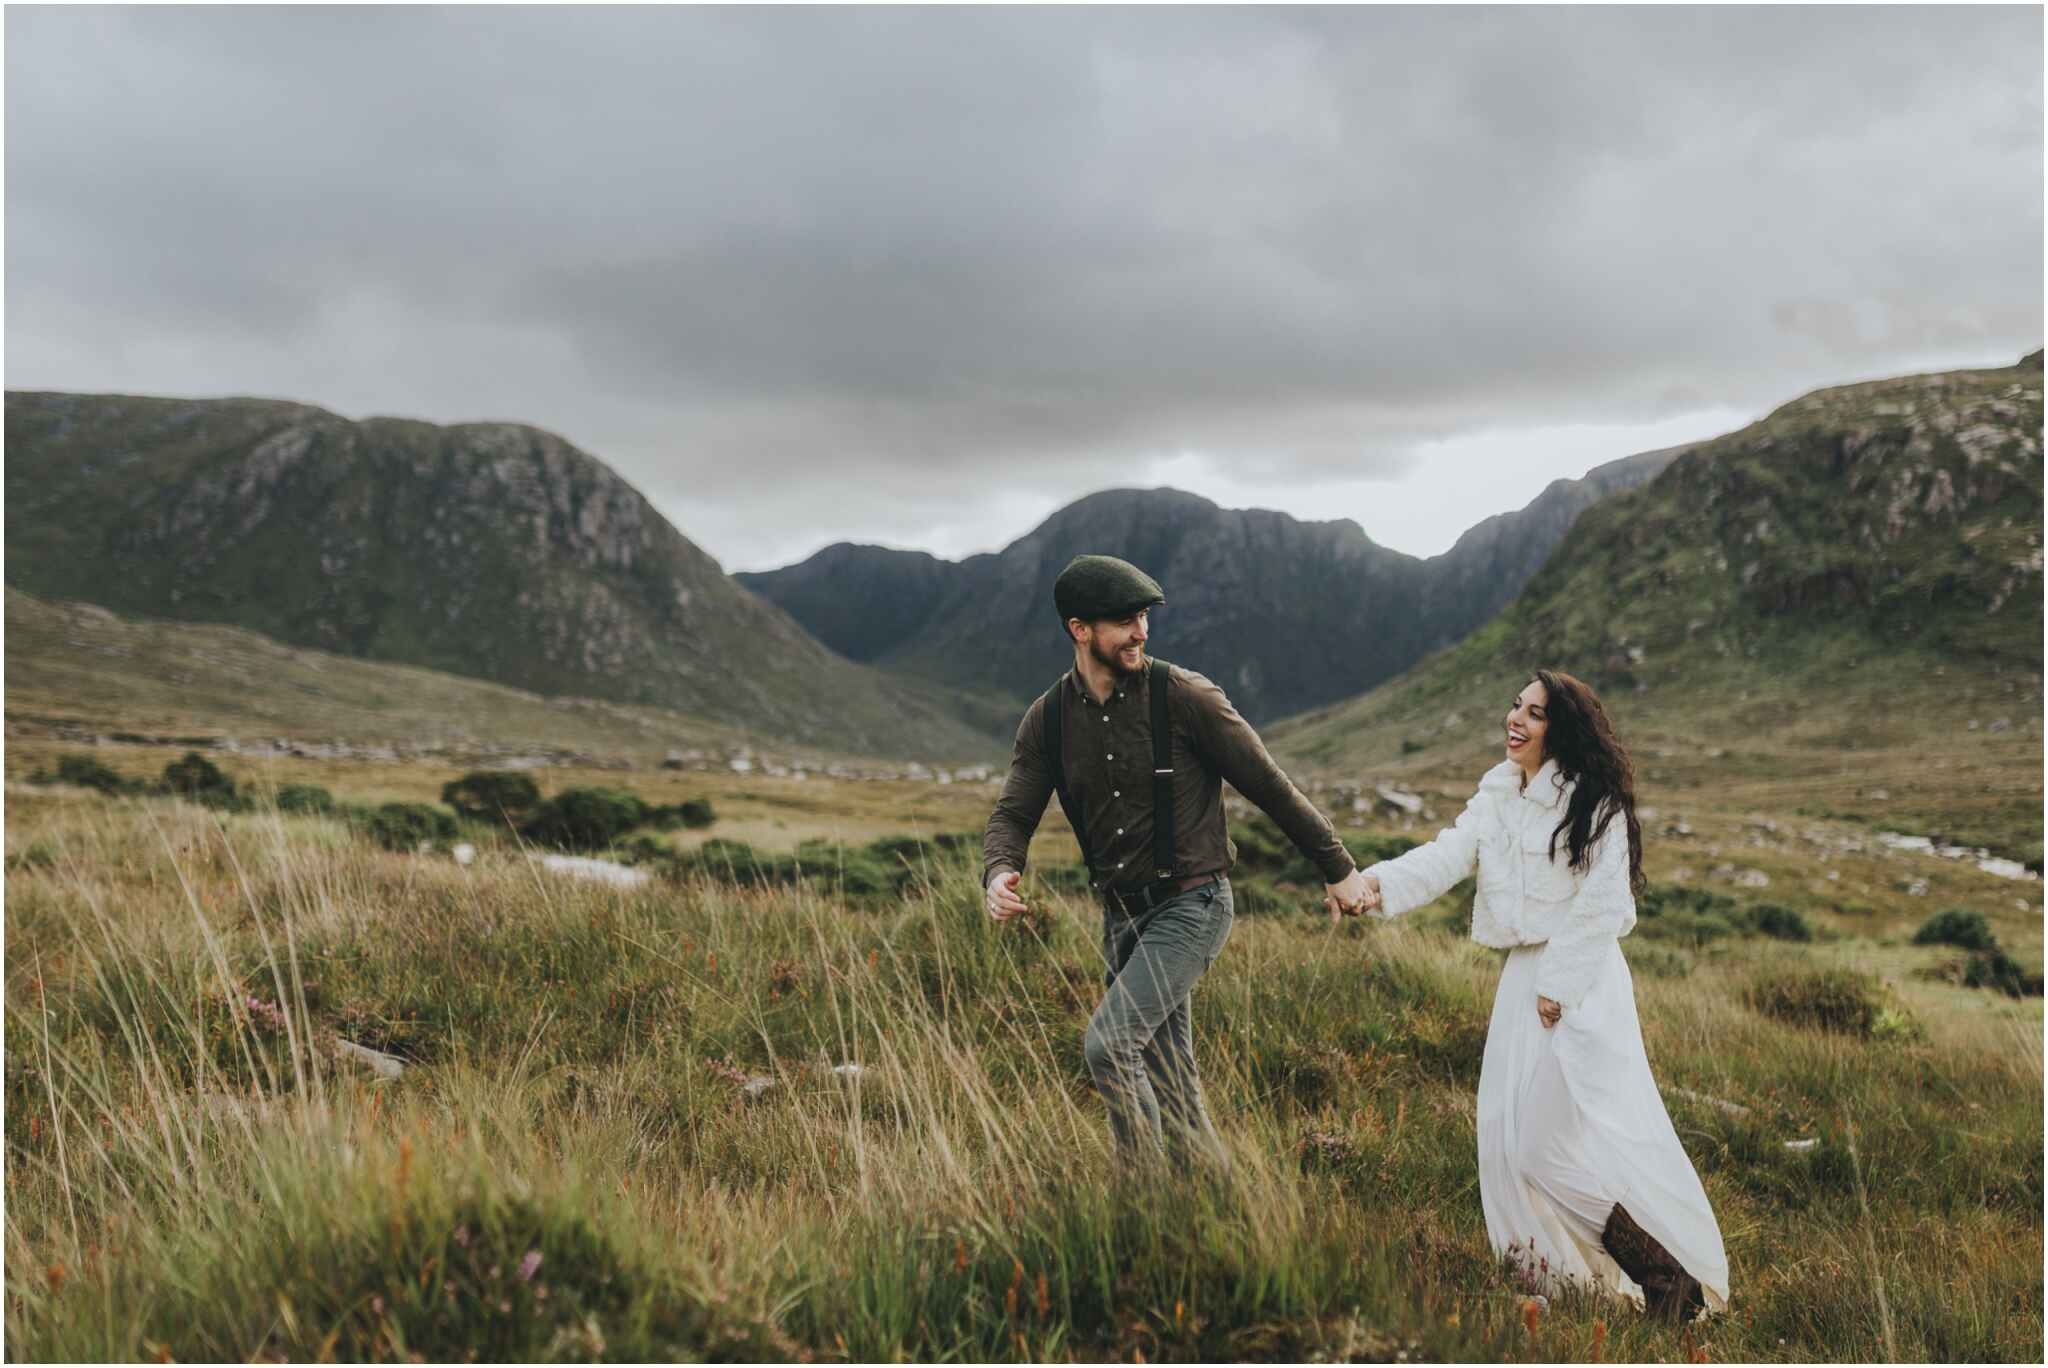 Hiking Elopement in Muckish Mountain and Poisoned Glen, Donegal